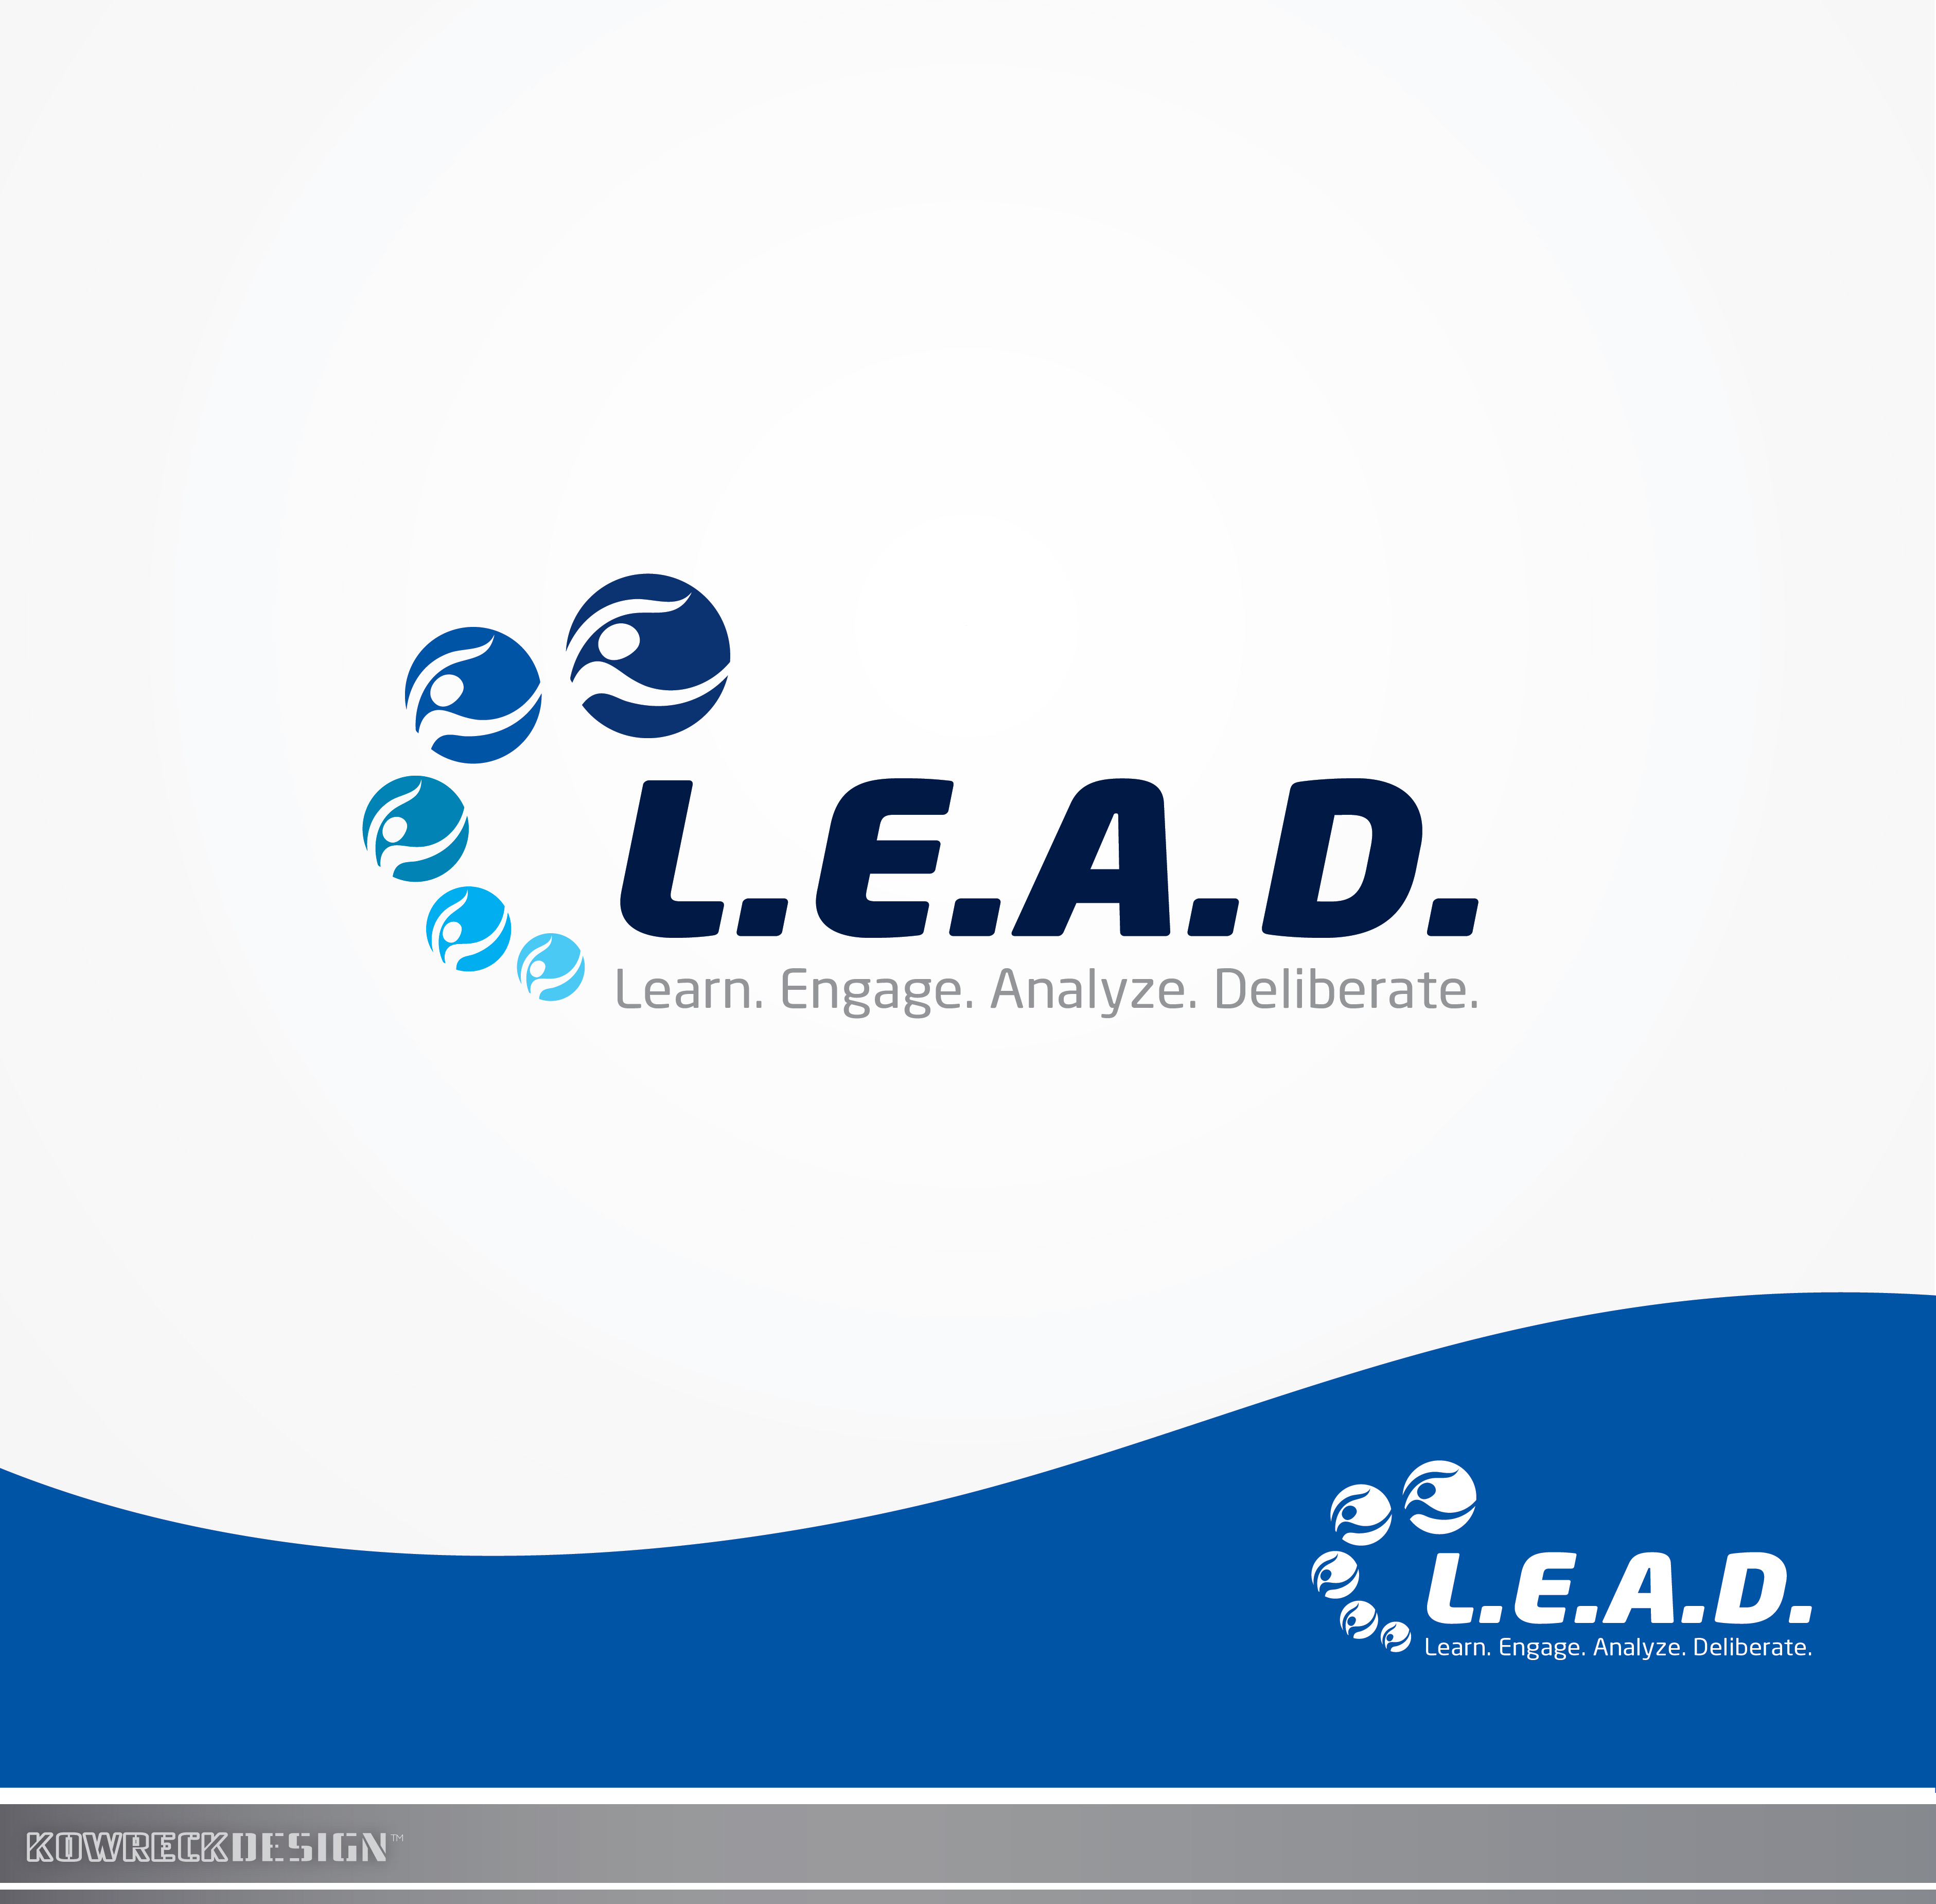 Logo Design by kowreck - Entry No. 7 in the Logo Design Contest L.E.A.D. (learn, engage, analyze, deliberate) Logo Design.